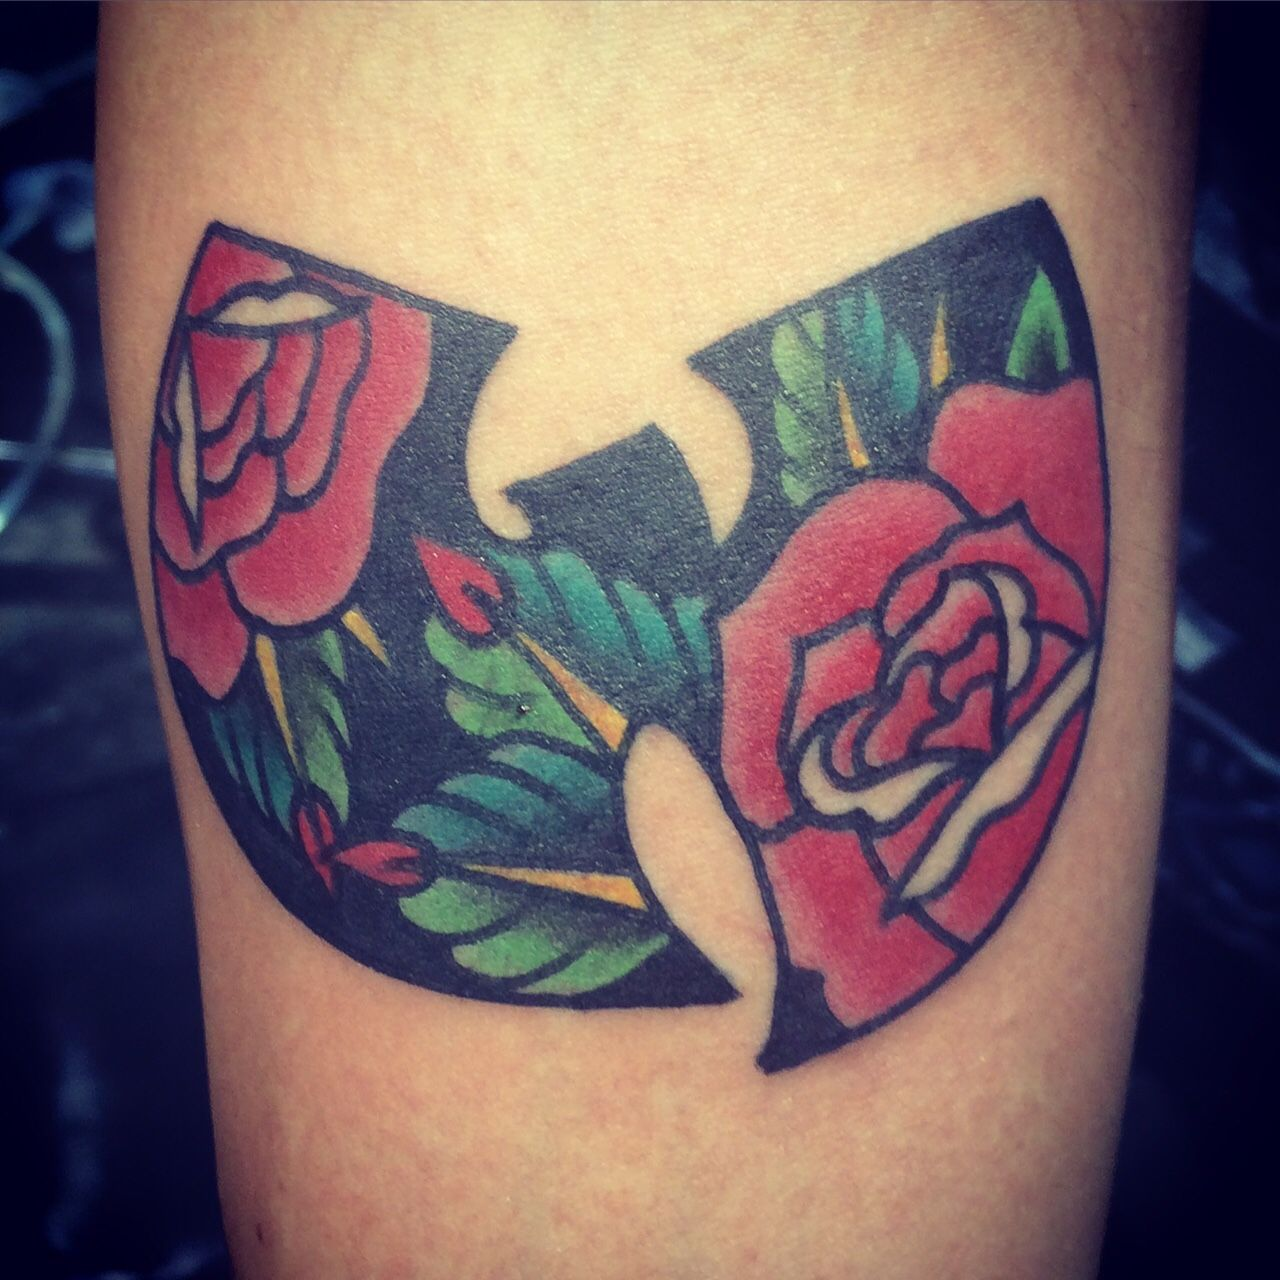 Wu tang roses done by jason houseman chicago il tattoosoh wu tang roses done by jason houseman chicago il pooptronica